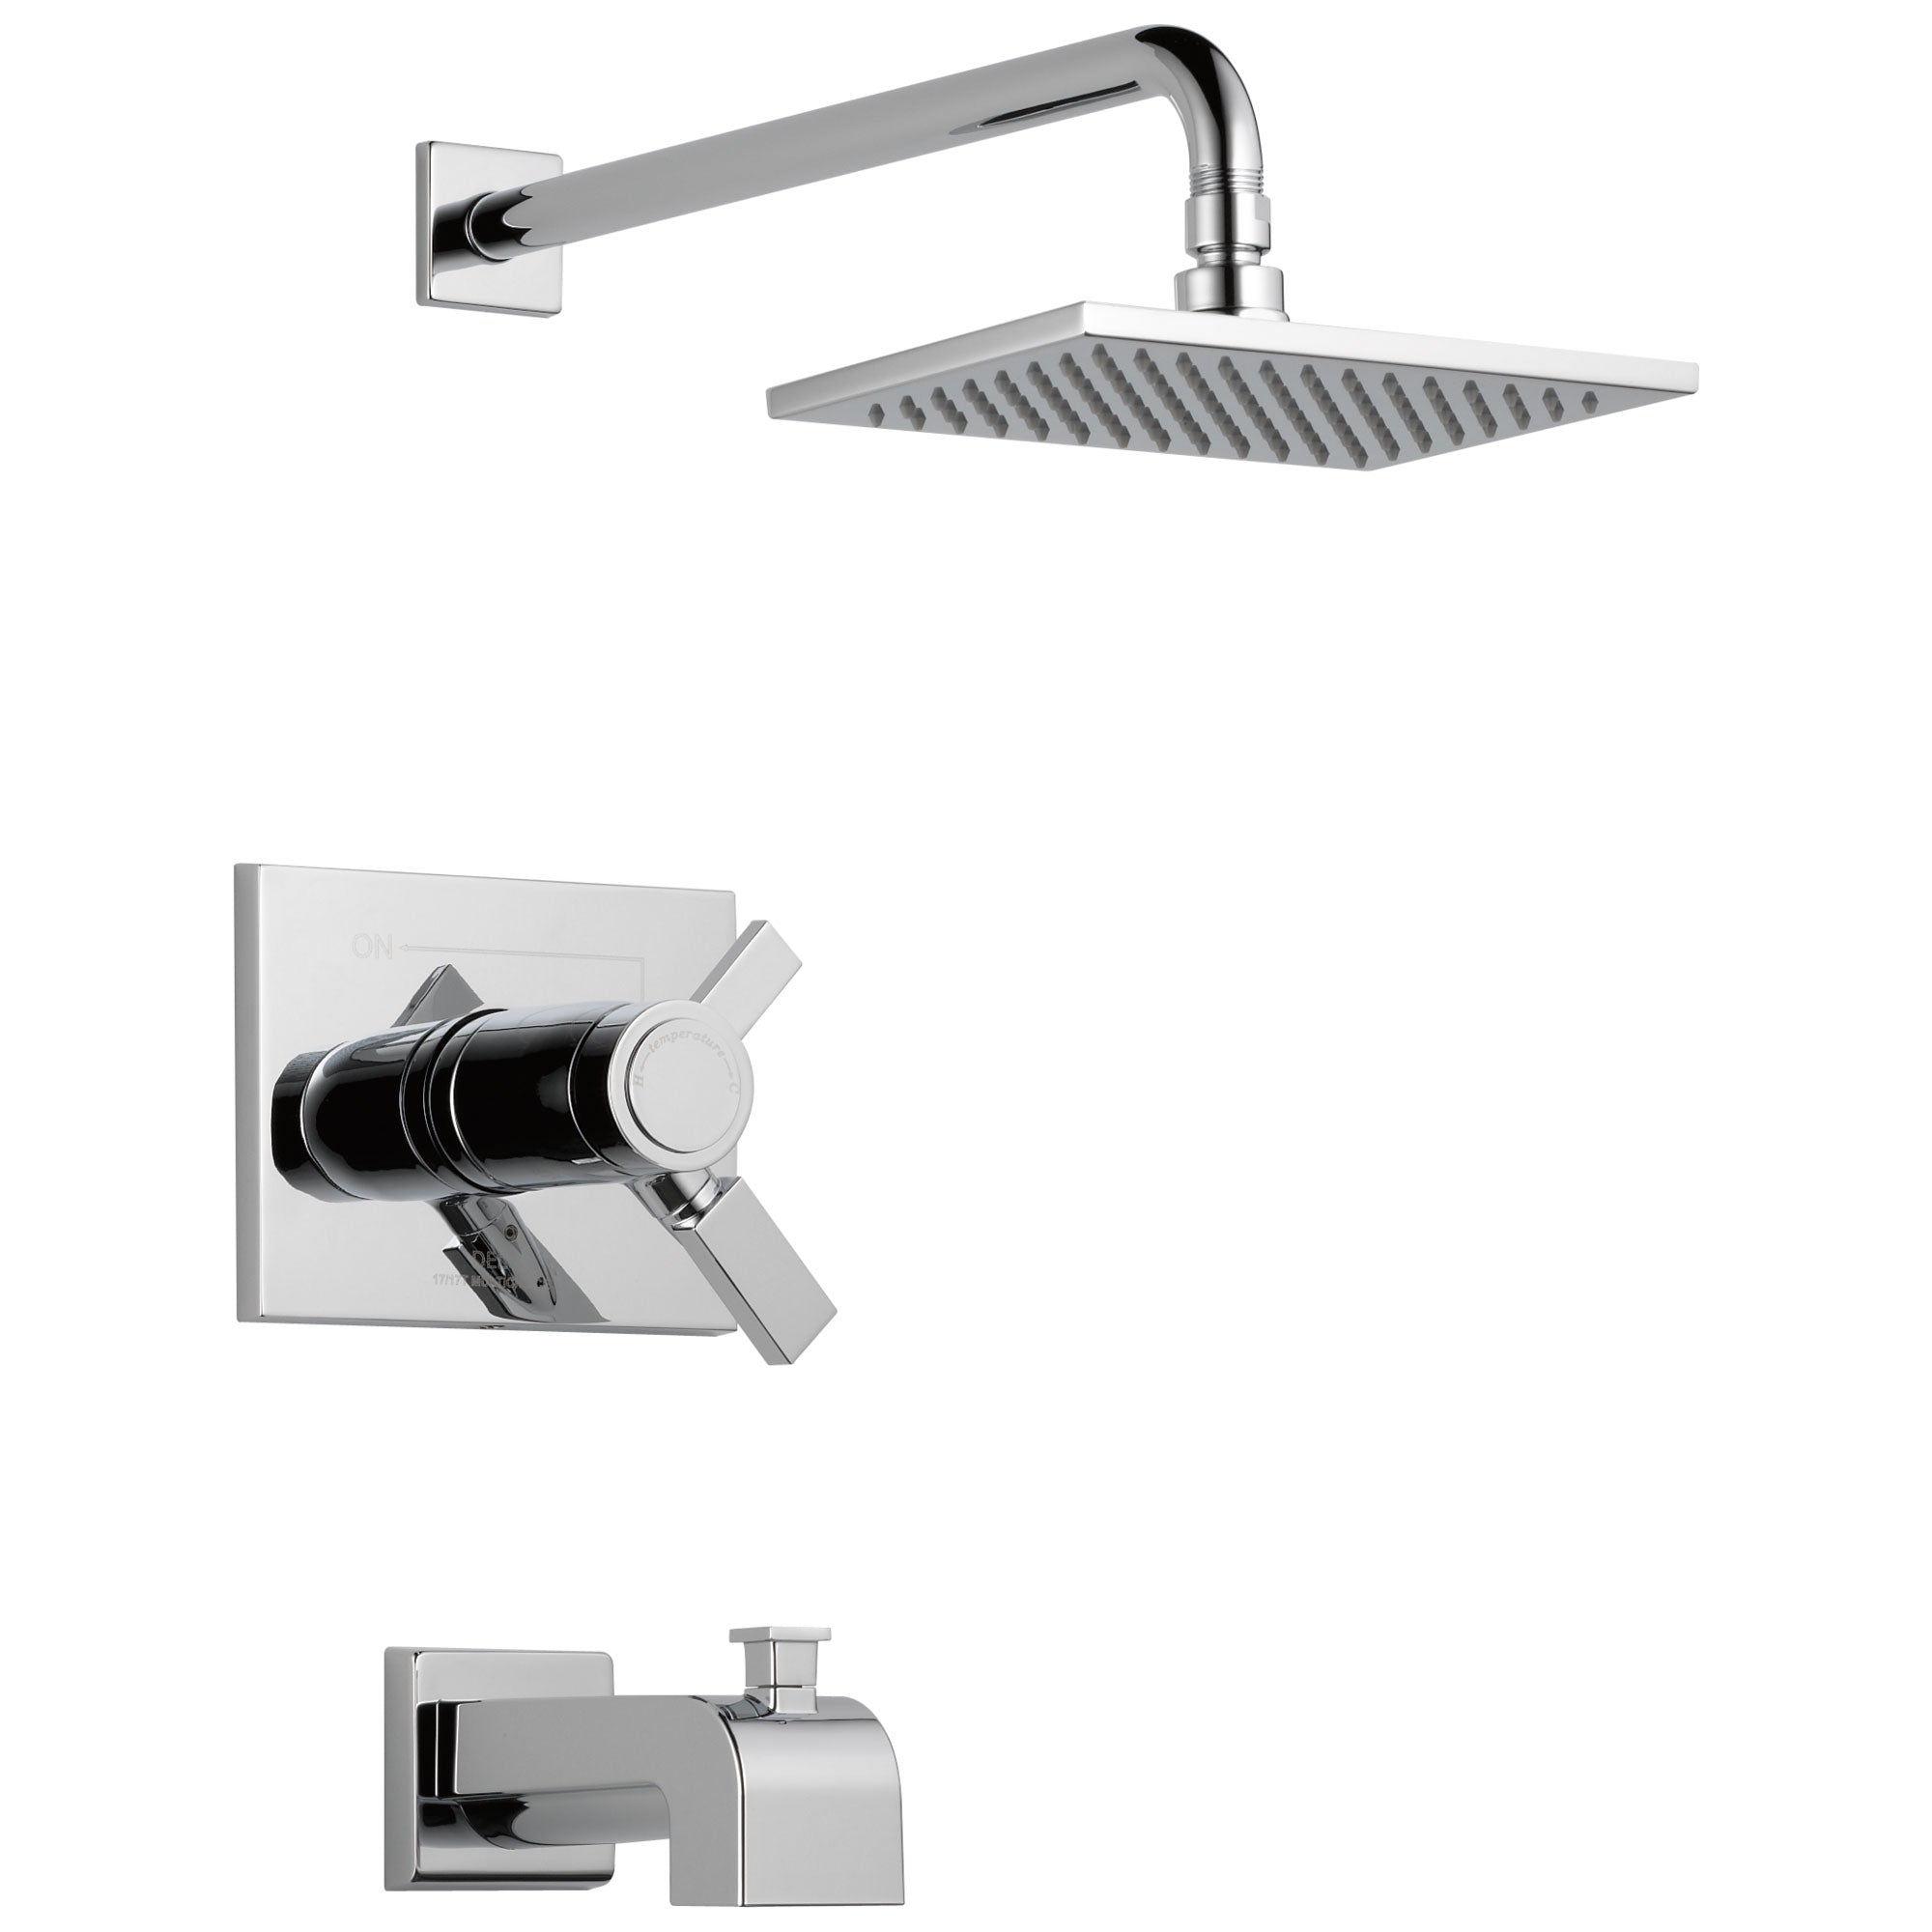 Delta Vero Chrome Finish Water Efficient Thermostatic Tub & Shower Faucet Combination Includes 17T Cartridge, Handles, and Valve with Stops D3236V